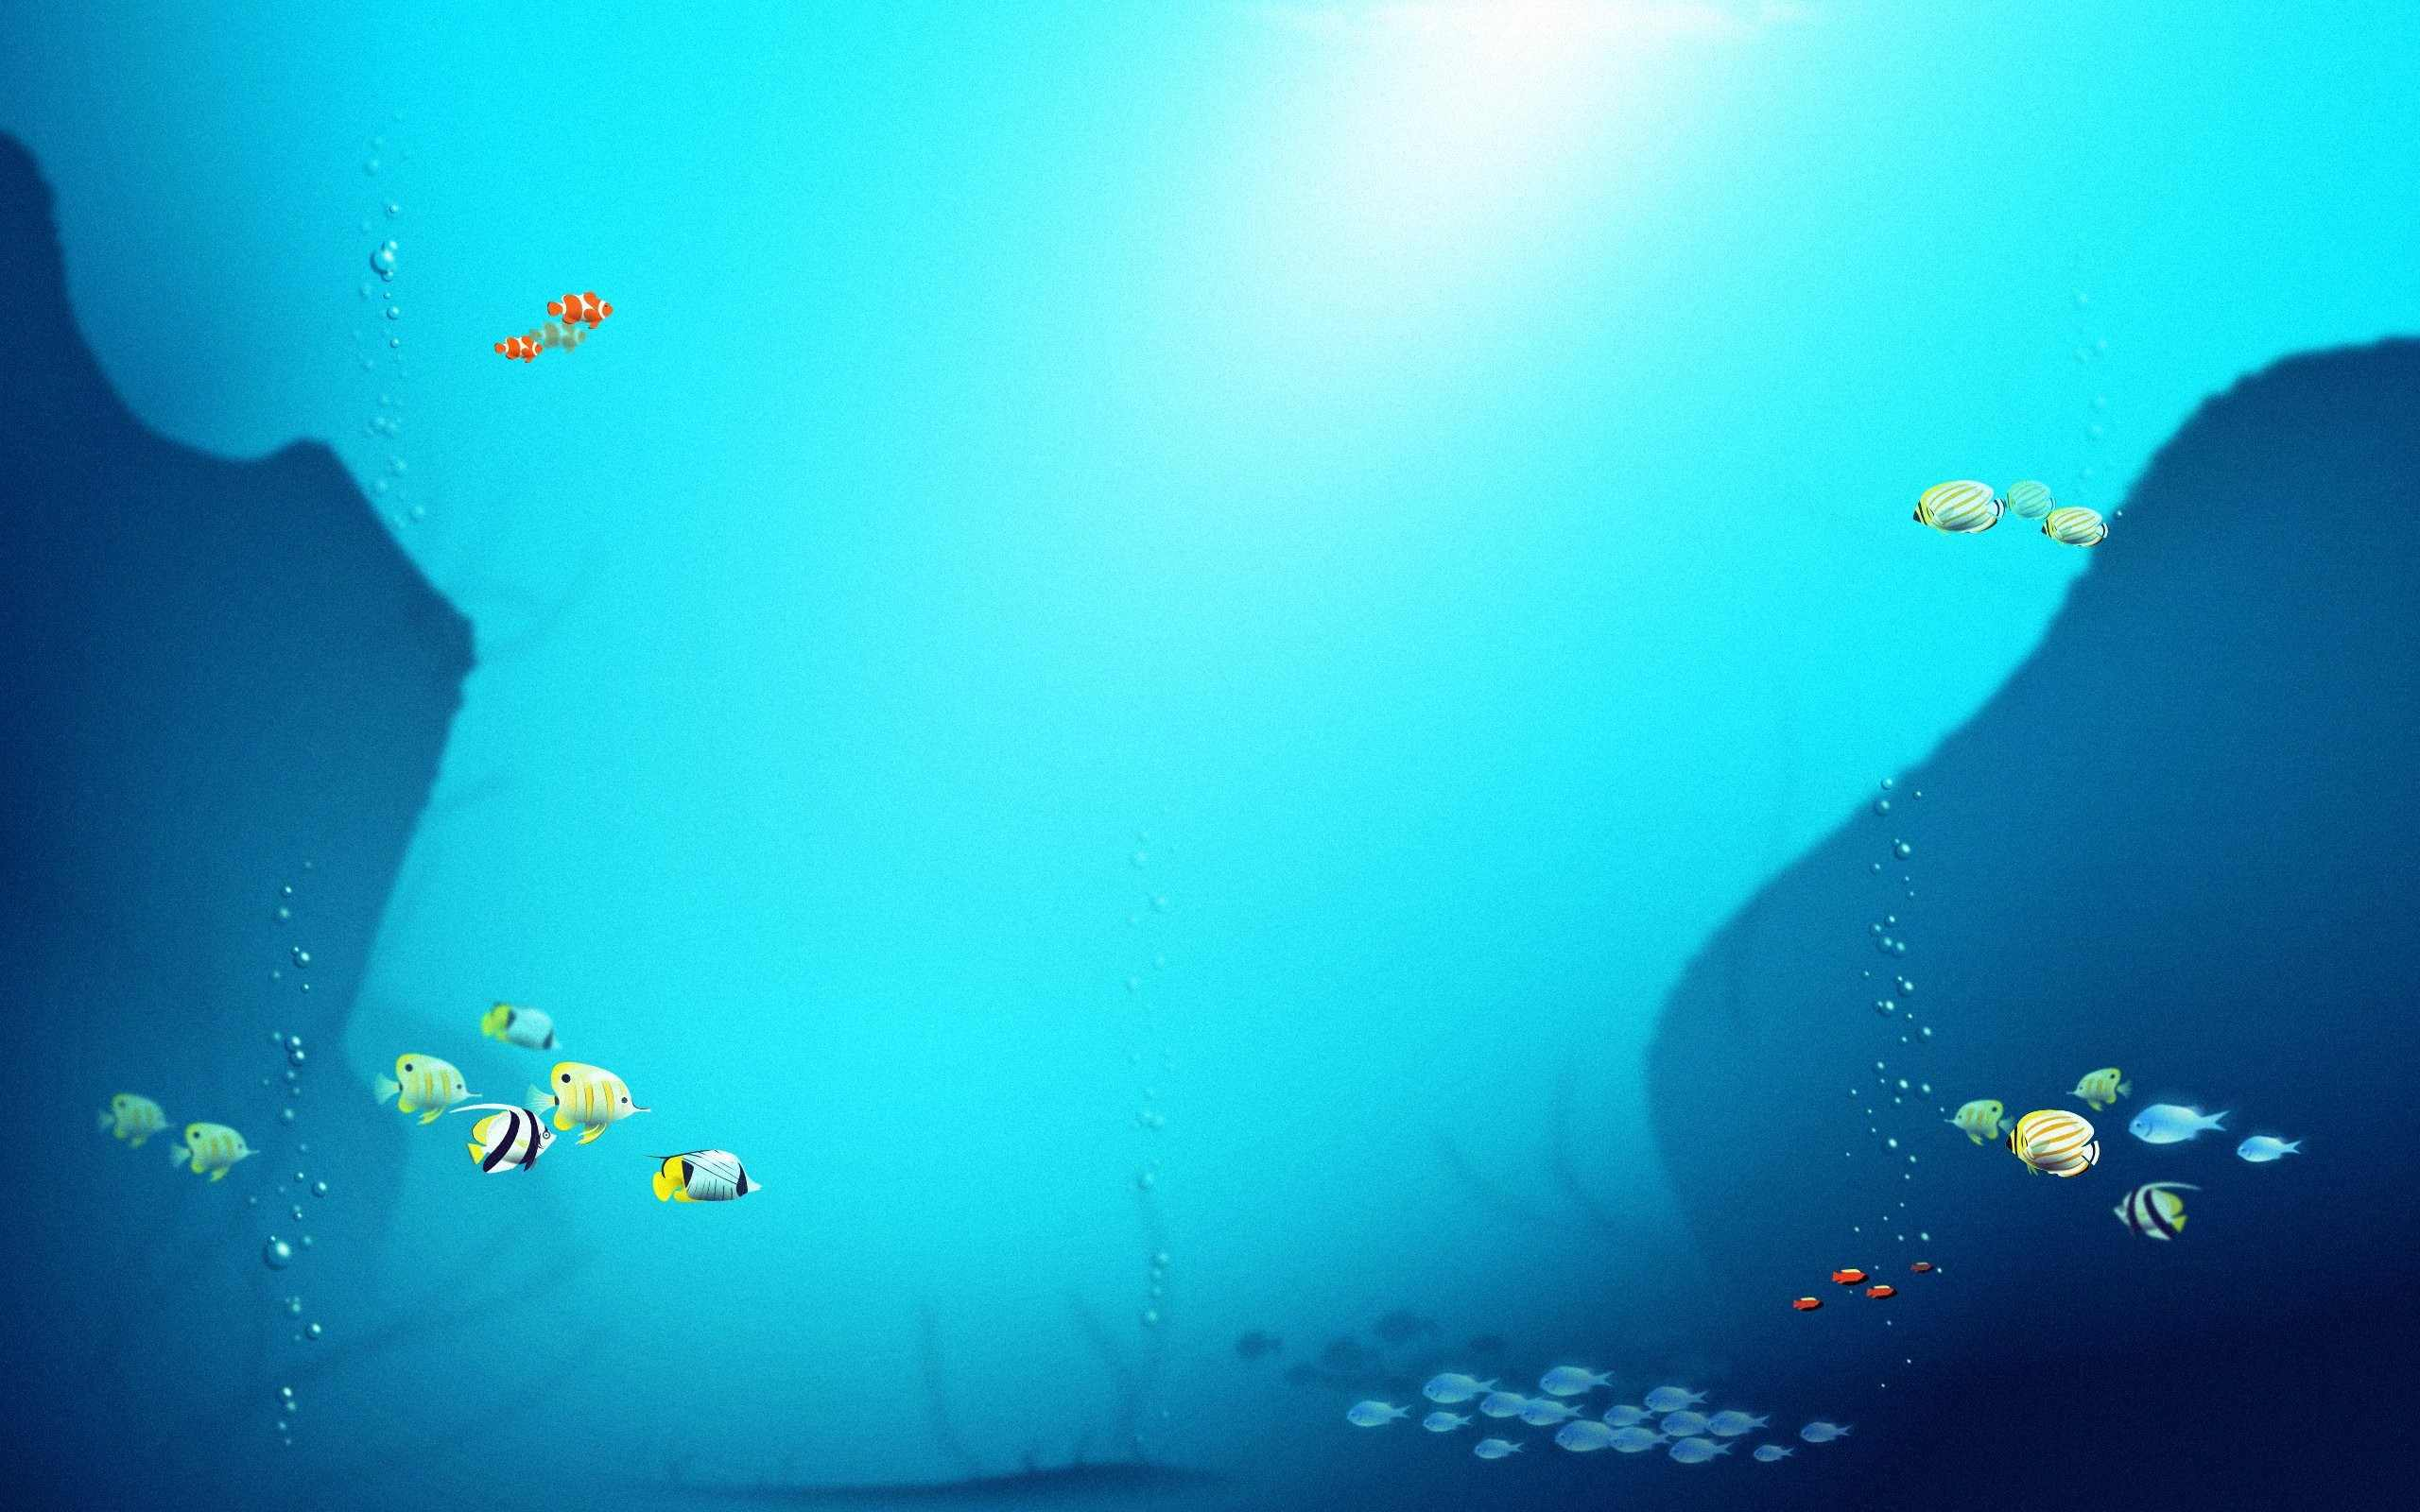 Fish Wallpaper 001